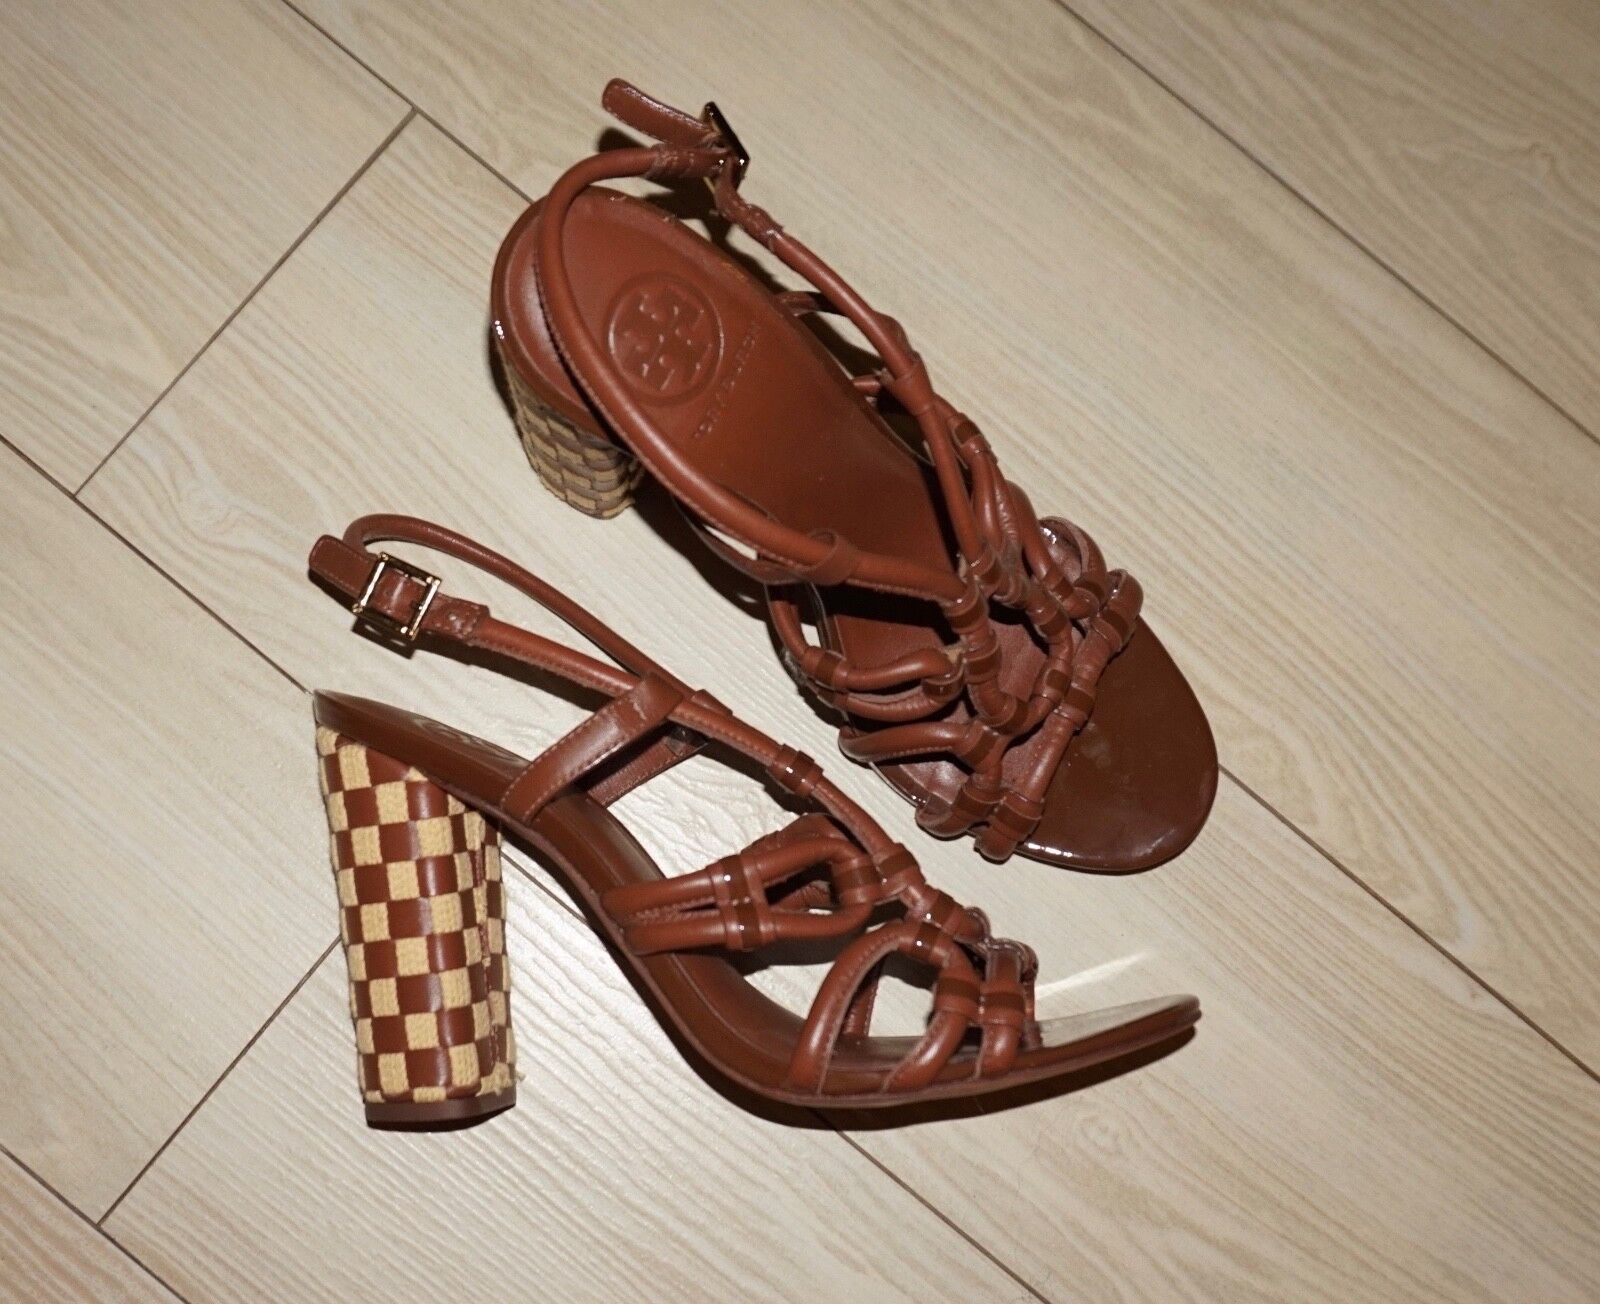 NEW Womens TORY BURCH Layce Heels Strappy Sandals Brown Leather Leather Leather Woven Heel 9 f55f8b